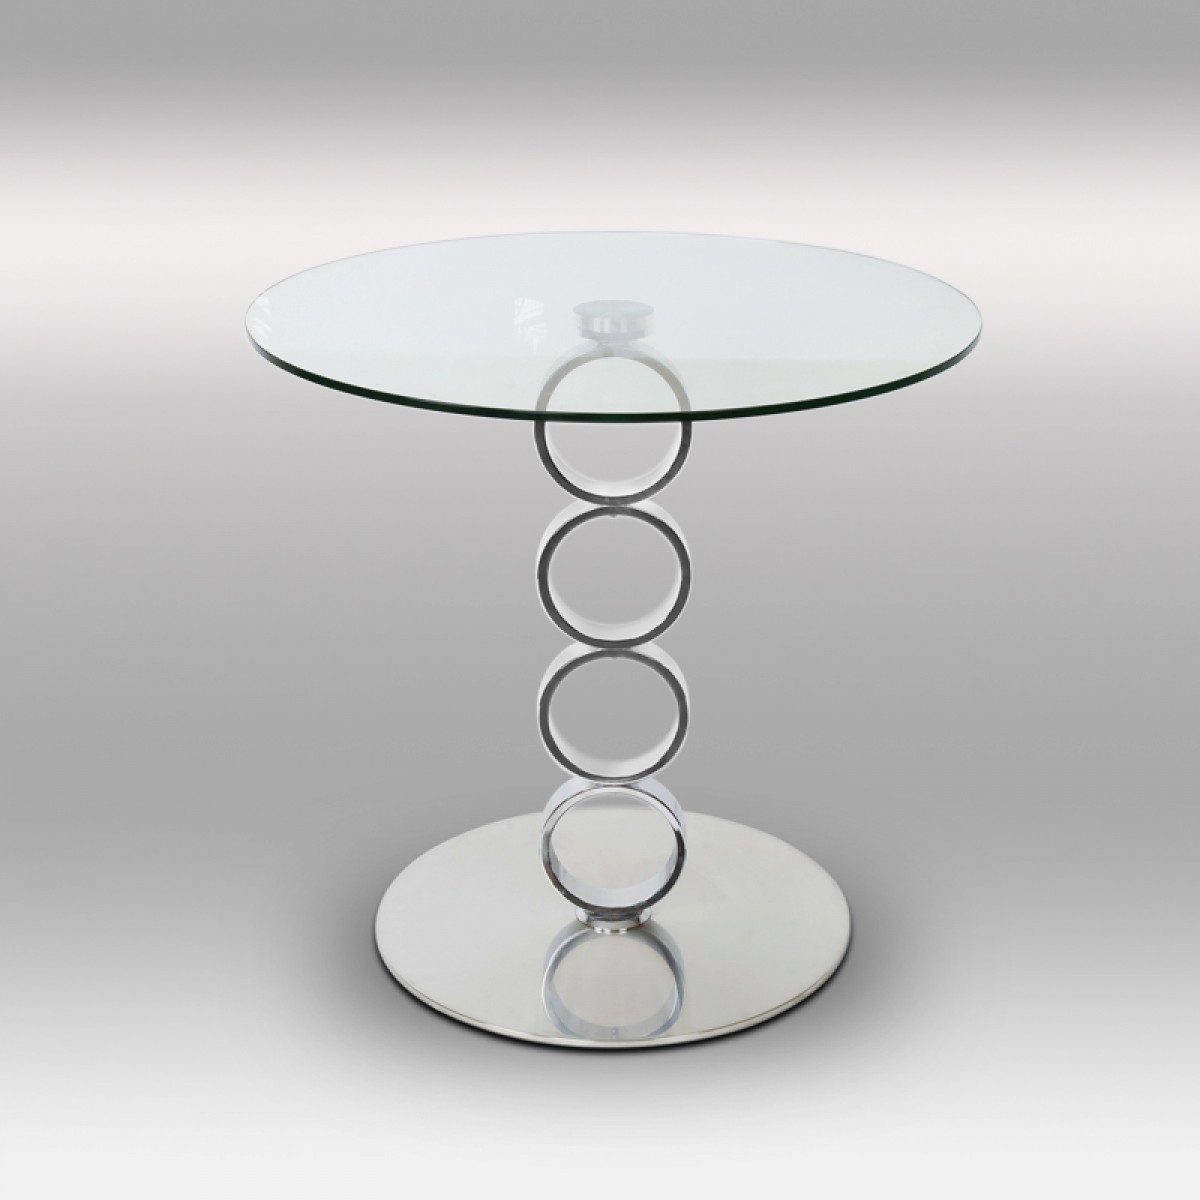 Table Basse En Inox à table basse en inox et verre olympe - tables basses - tables & consoles